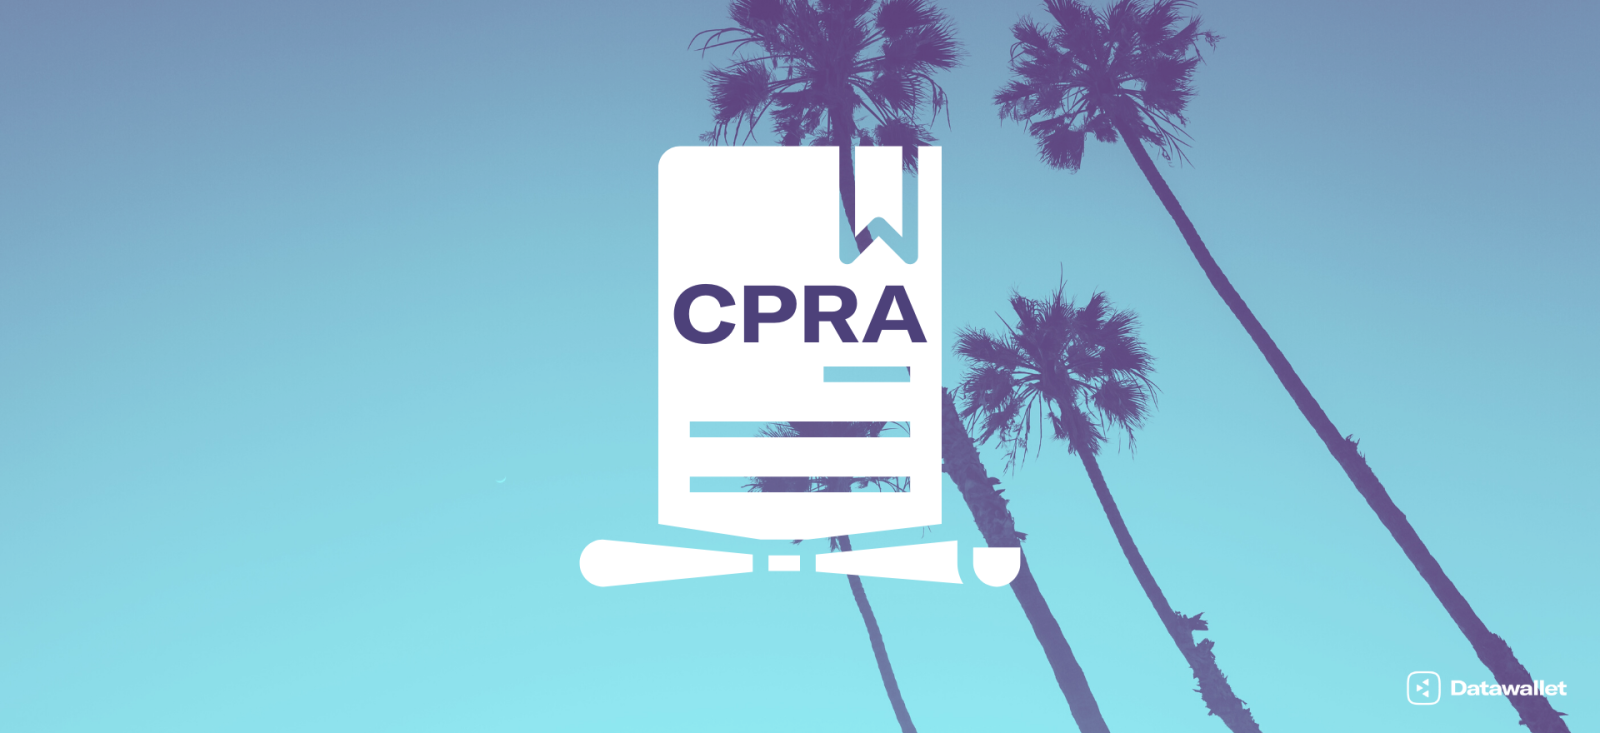 """CCPA 2.0"" Could Significantly Expand the CCPA"